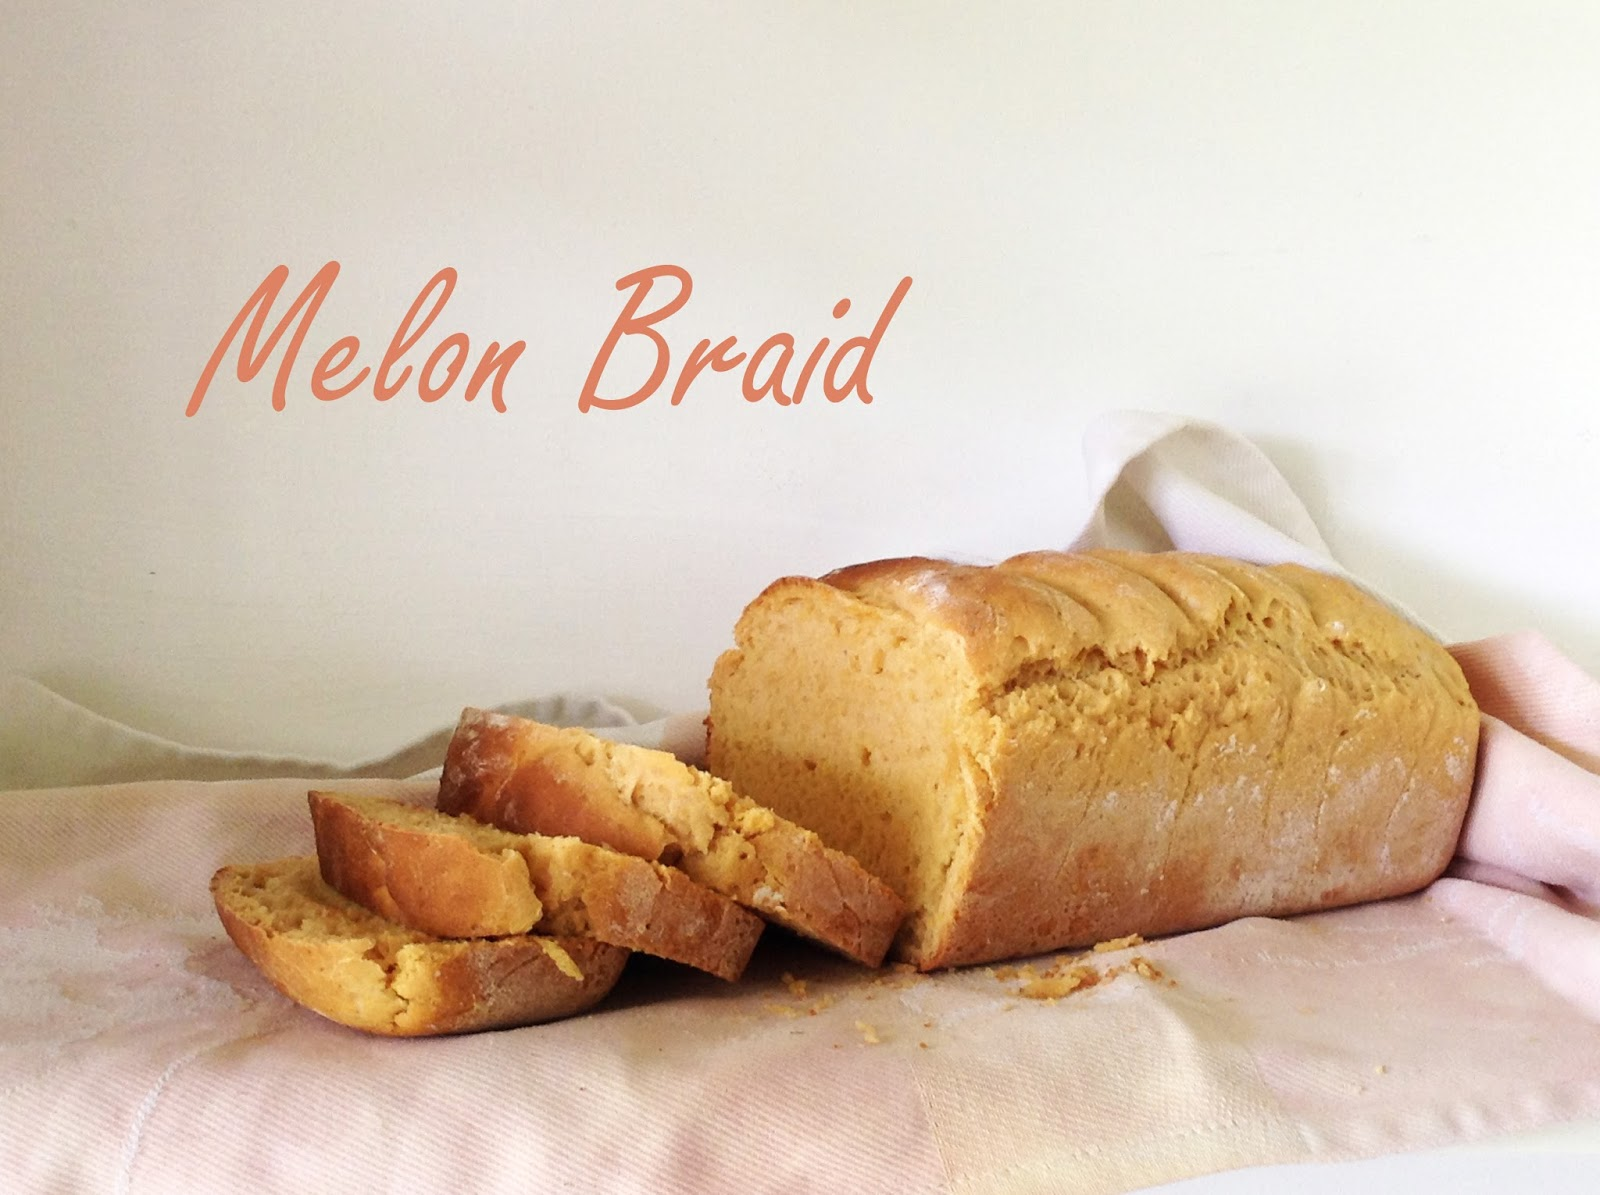 bread braid watermelon melon bake baking sweet pink